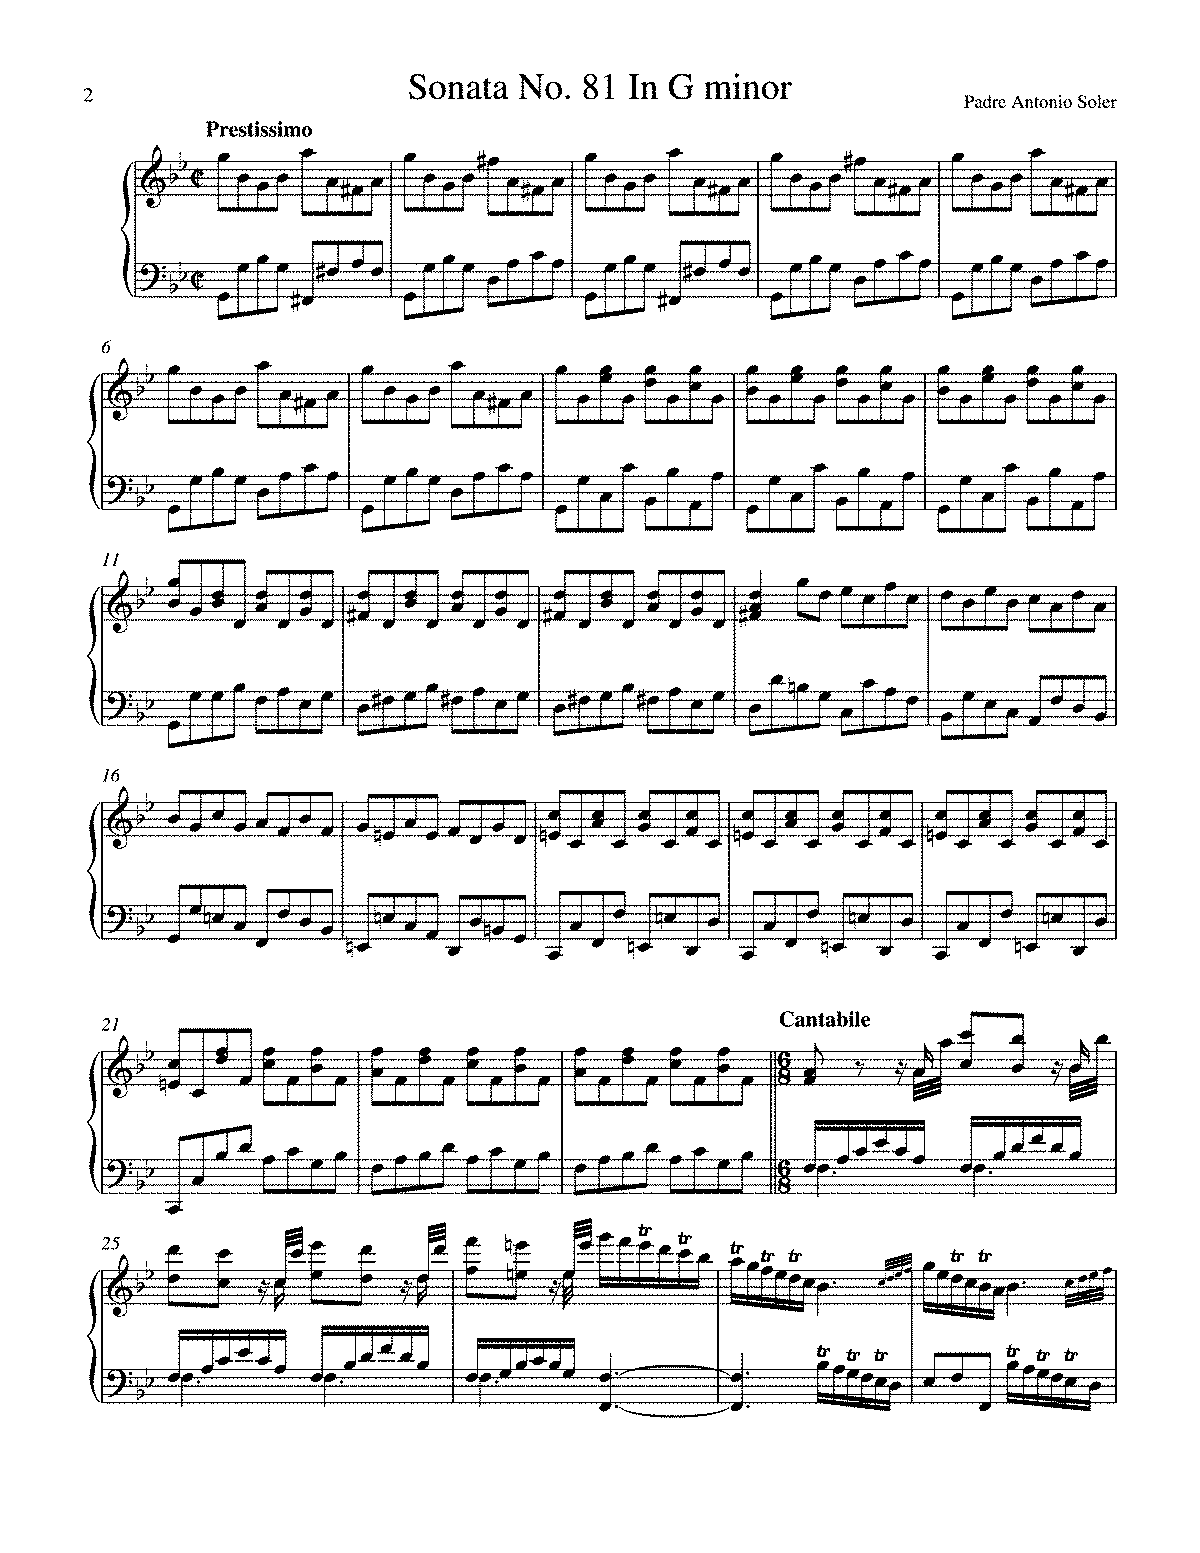 PMLP104310-Sonata R.81 in G minor.pdf